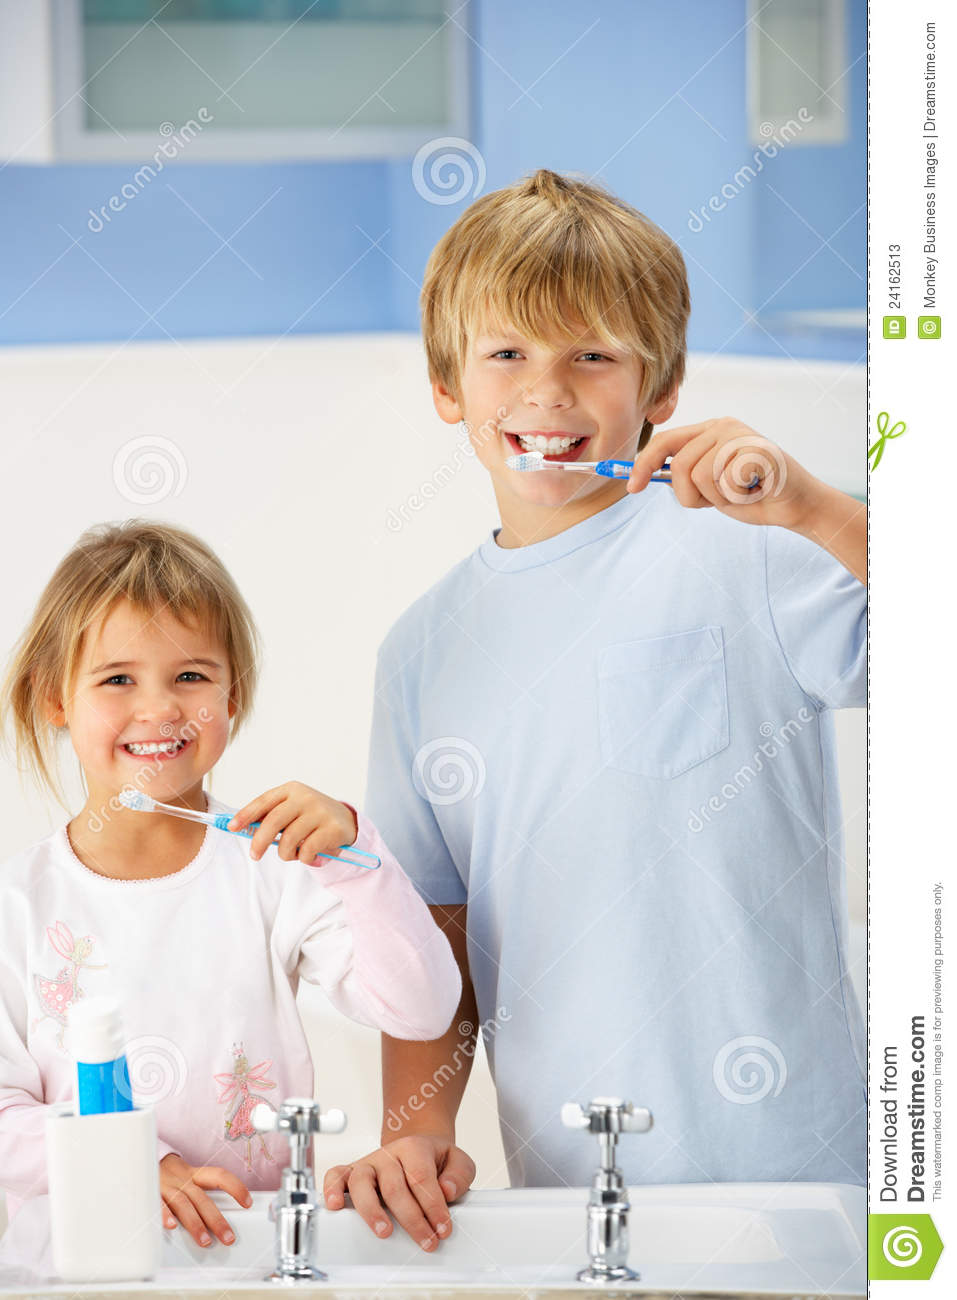 Boy and girl cleaning teeth in bathroom stock photos for Girls in bathroom with boys